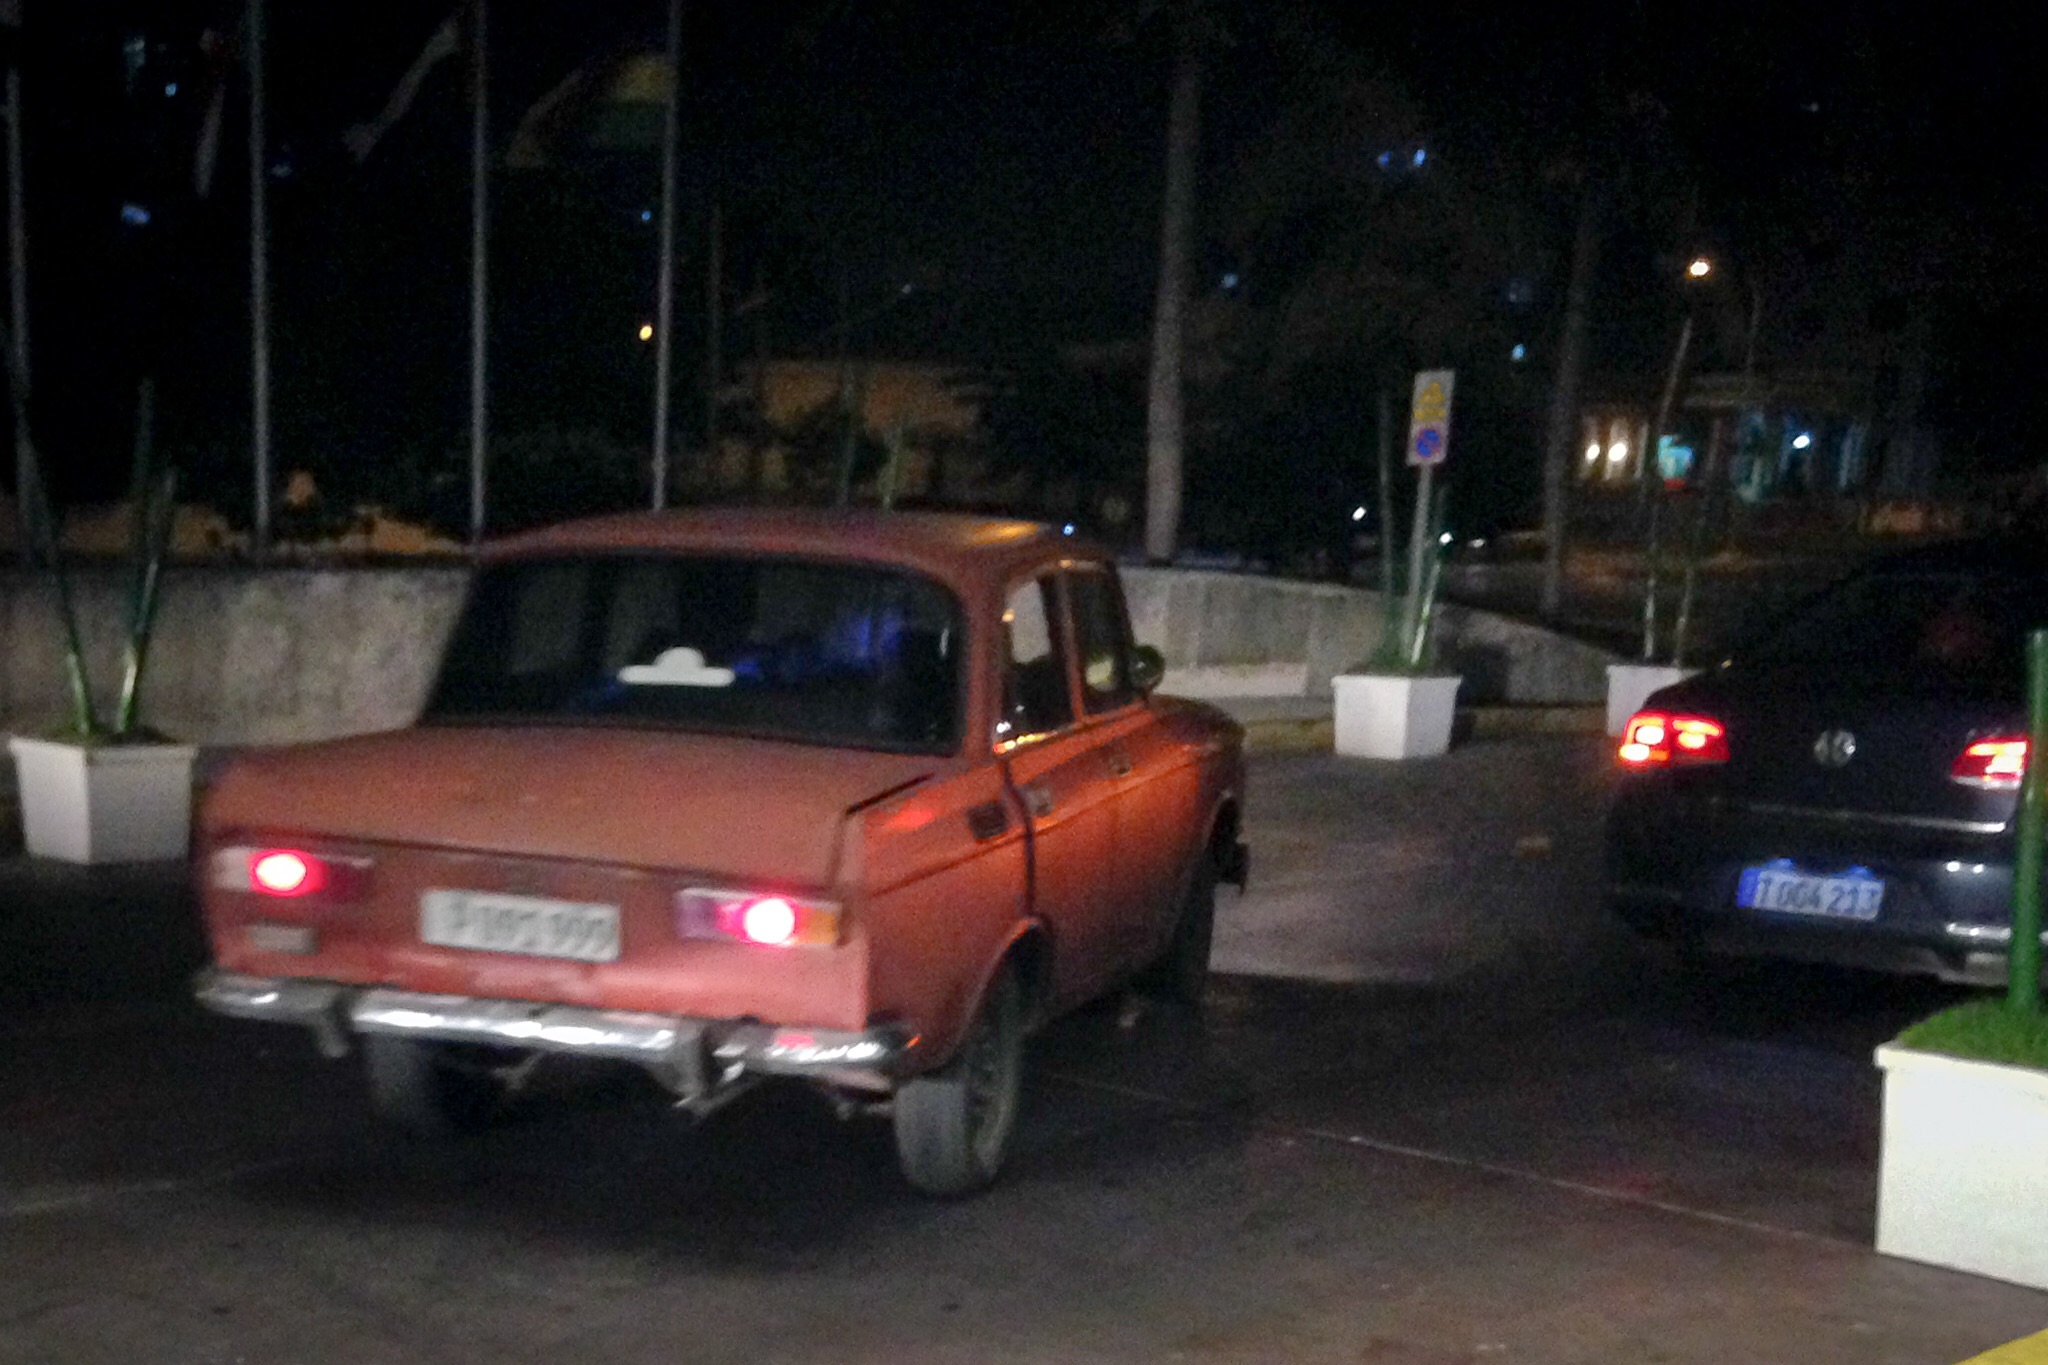 The Lada we rode home in was not a tourist taxi, but it was a fun experience!